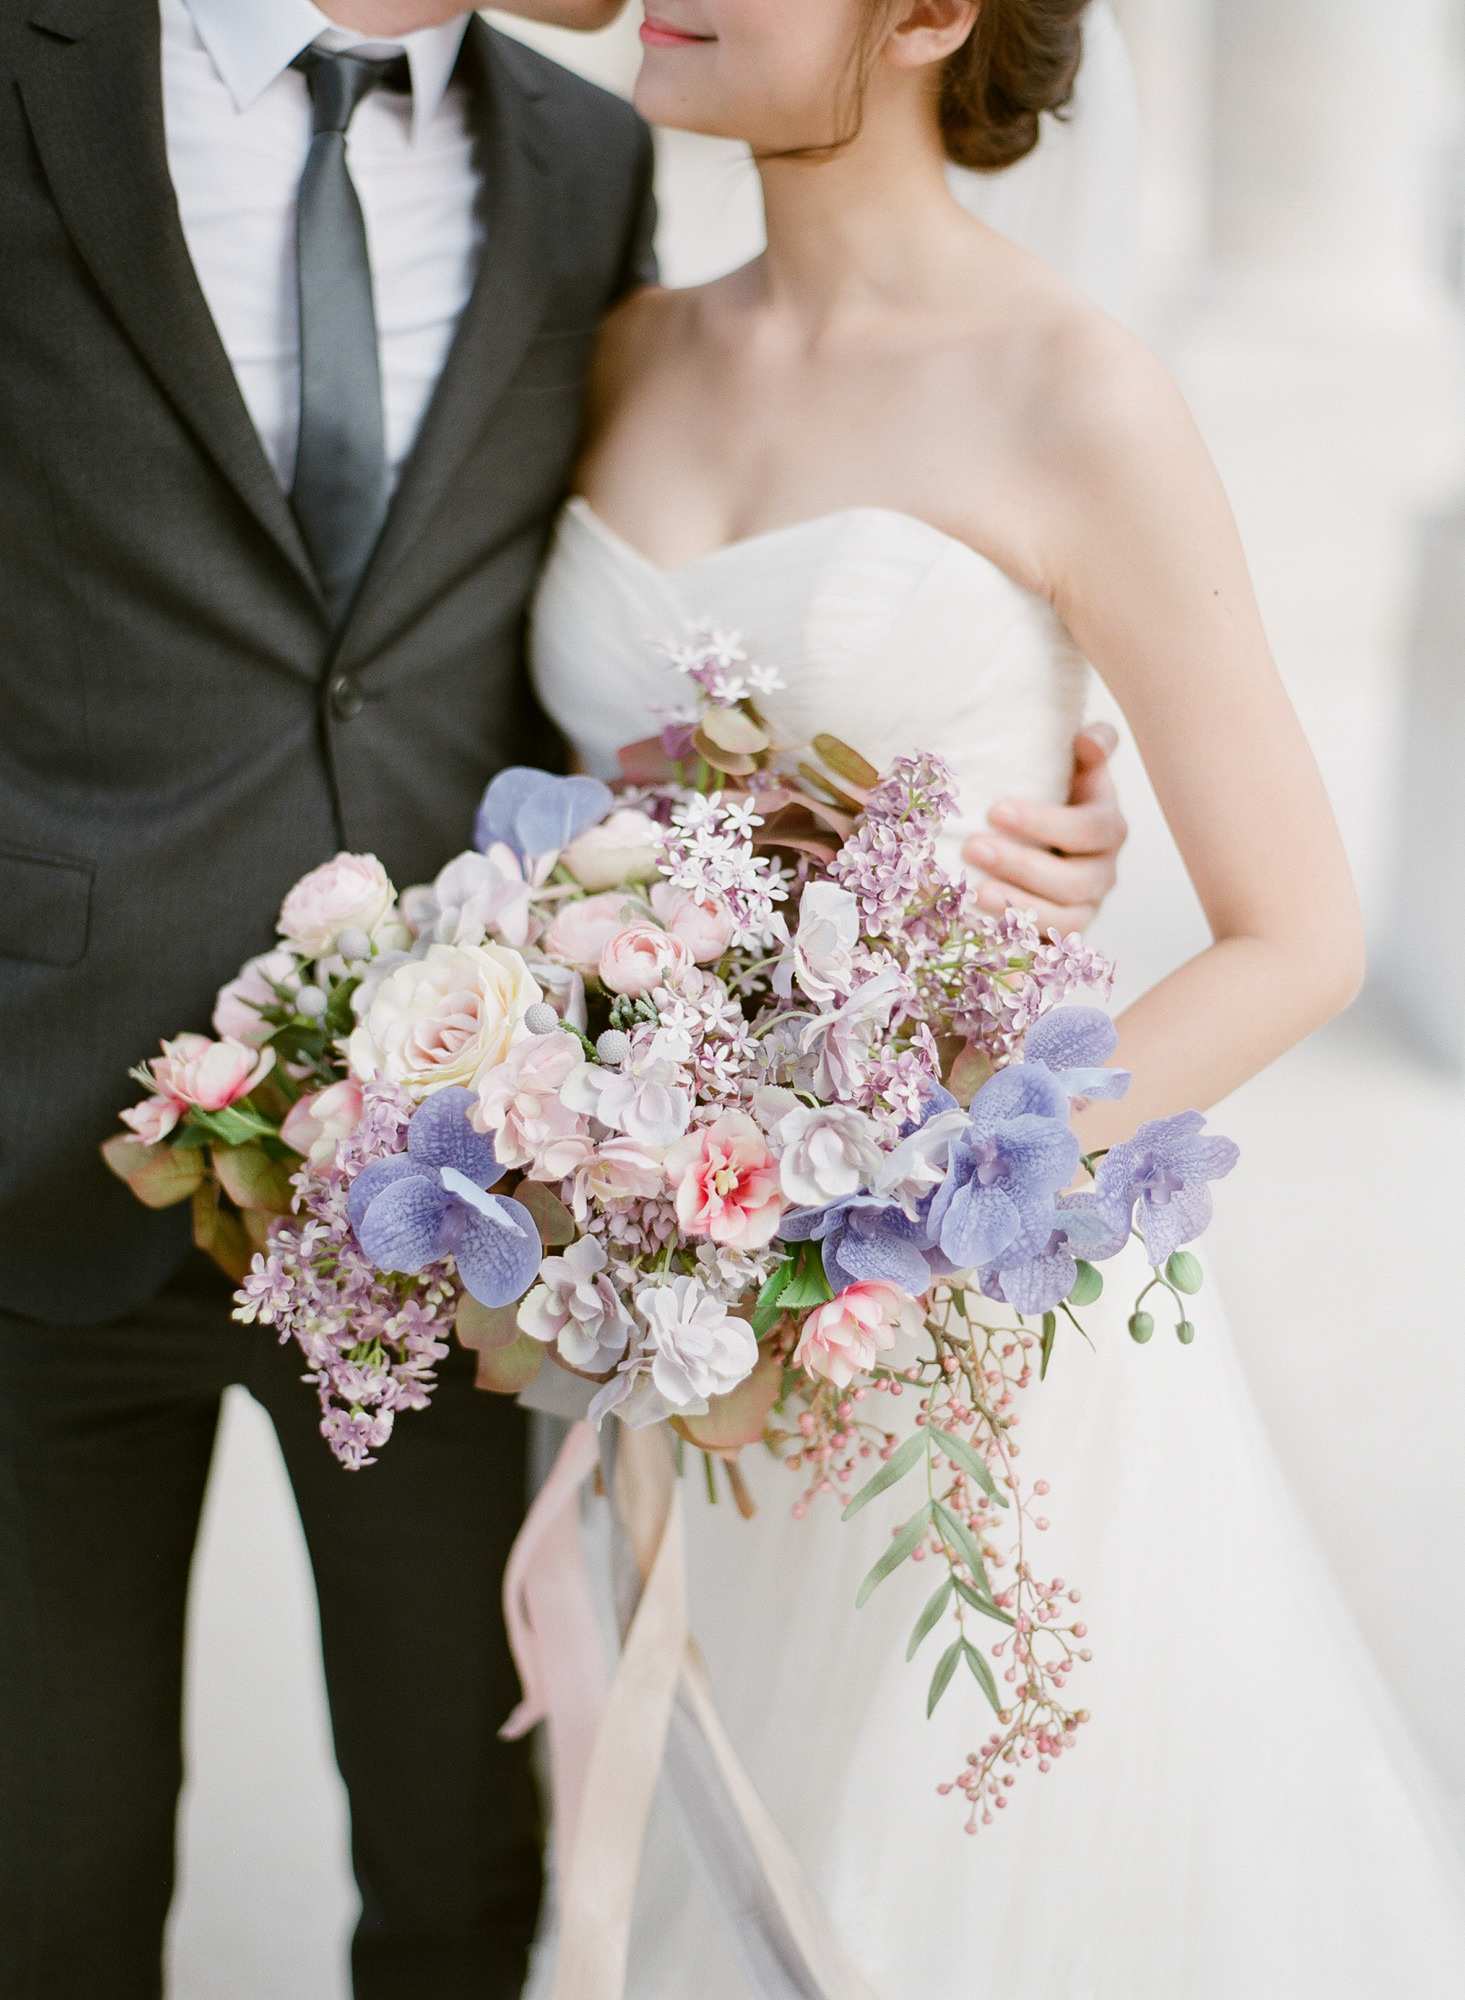 Large bouqet of roses, lilacs, and purple orchids  - Greg Finck Photography